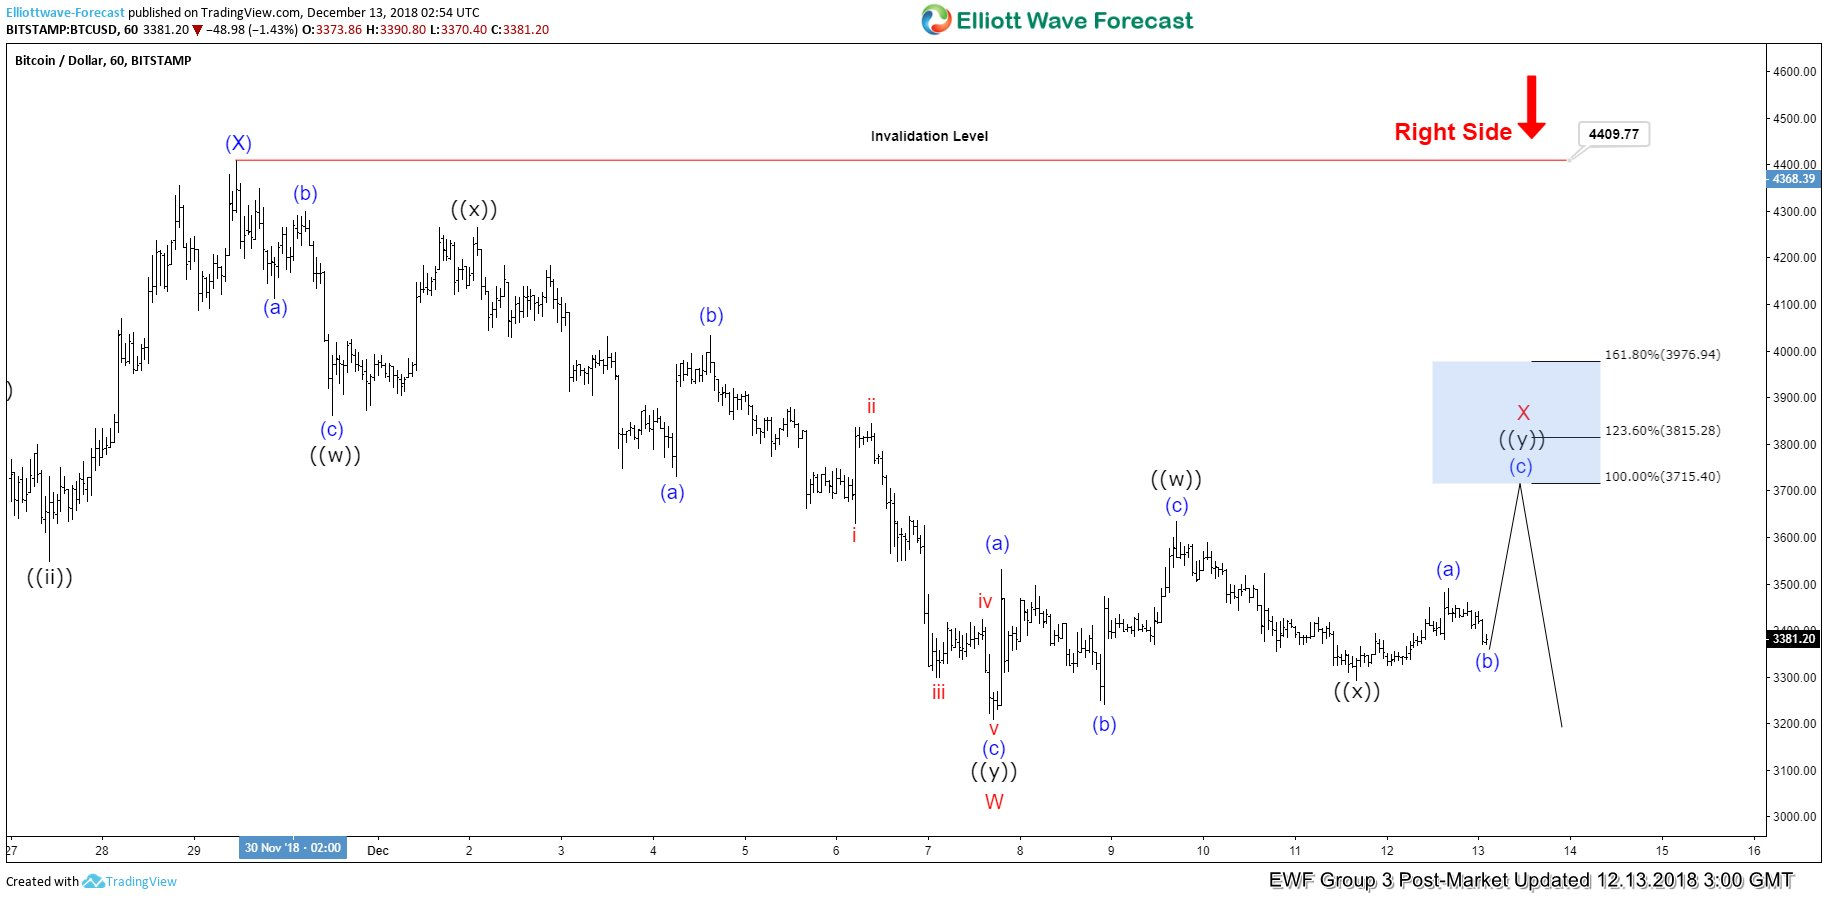 Elliott Wave chart showing Bitcoin selloff not over